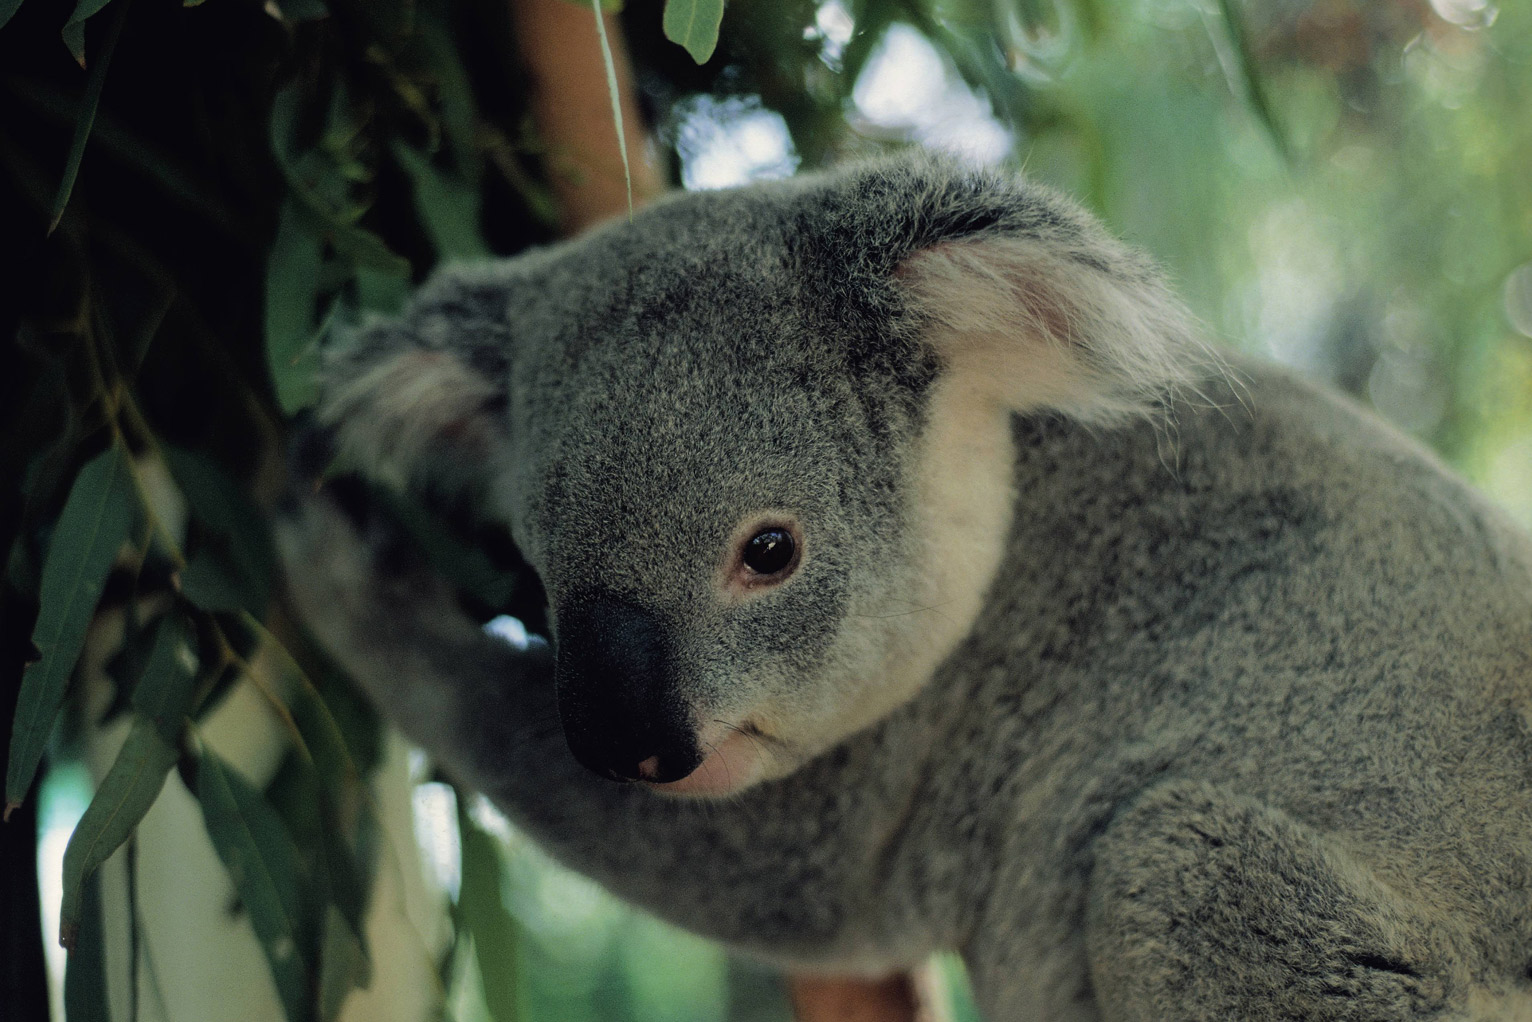 research koalas stay cool by hugging trees us news